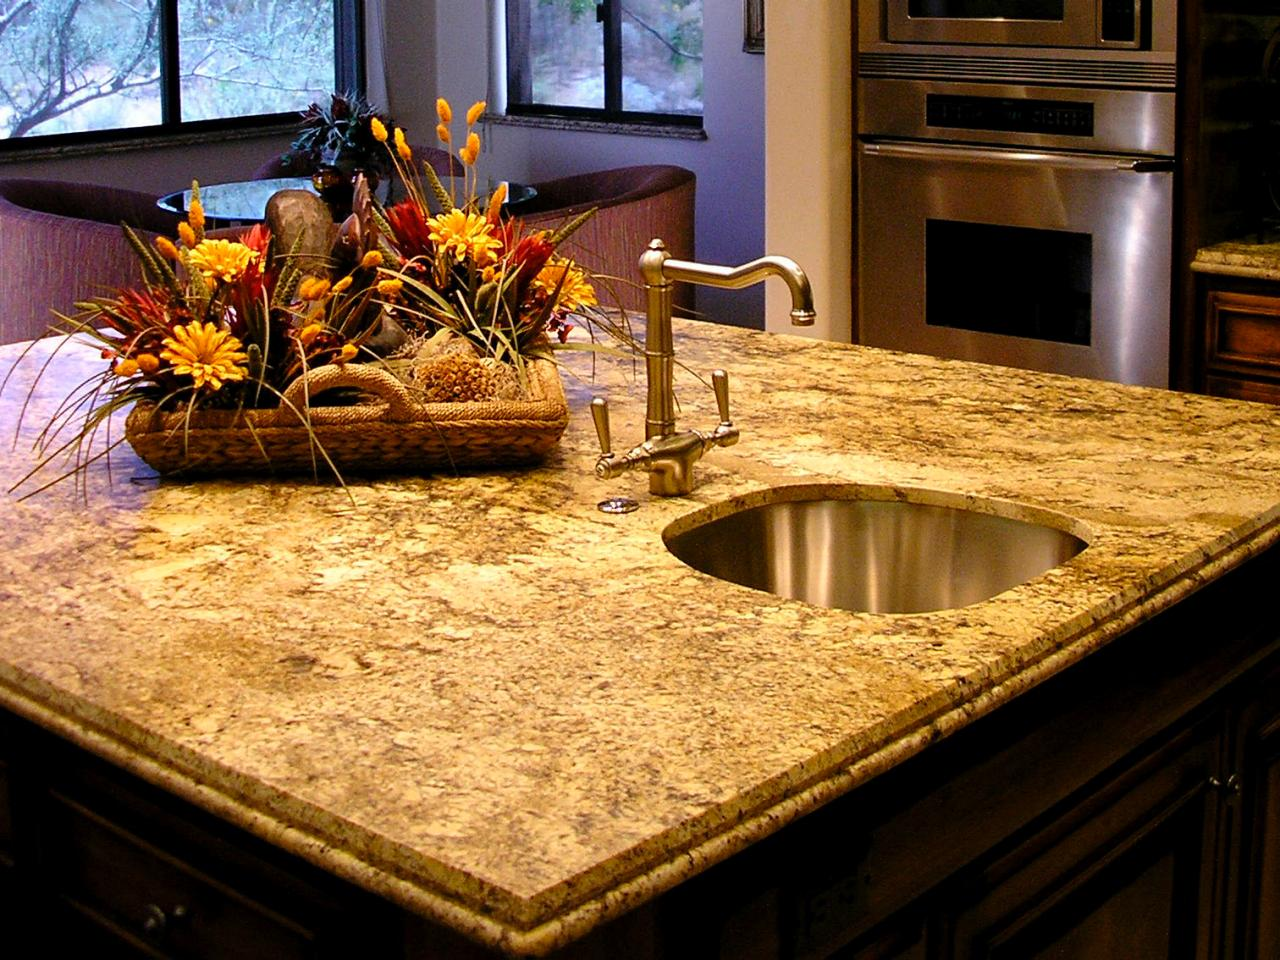 Quartz Countertops More Expensive Than Granite Kitchen Countertop Styles And Trends Kitchen Designs